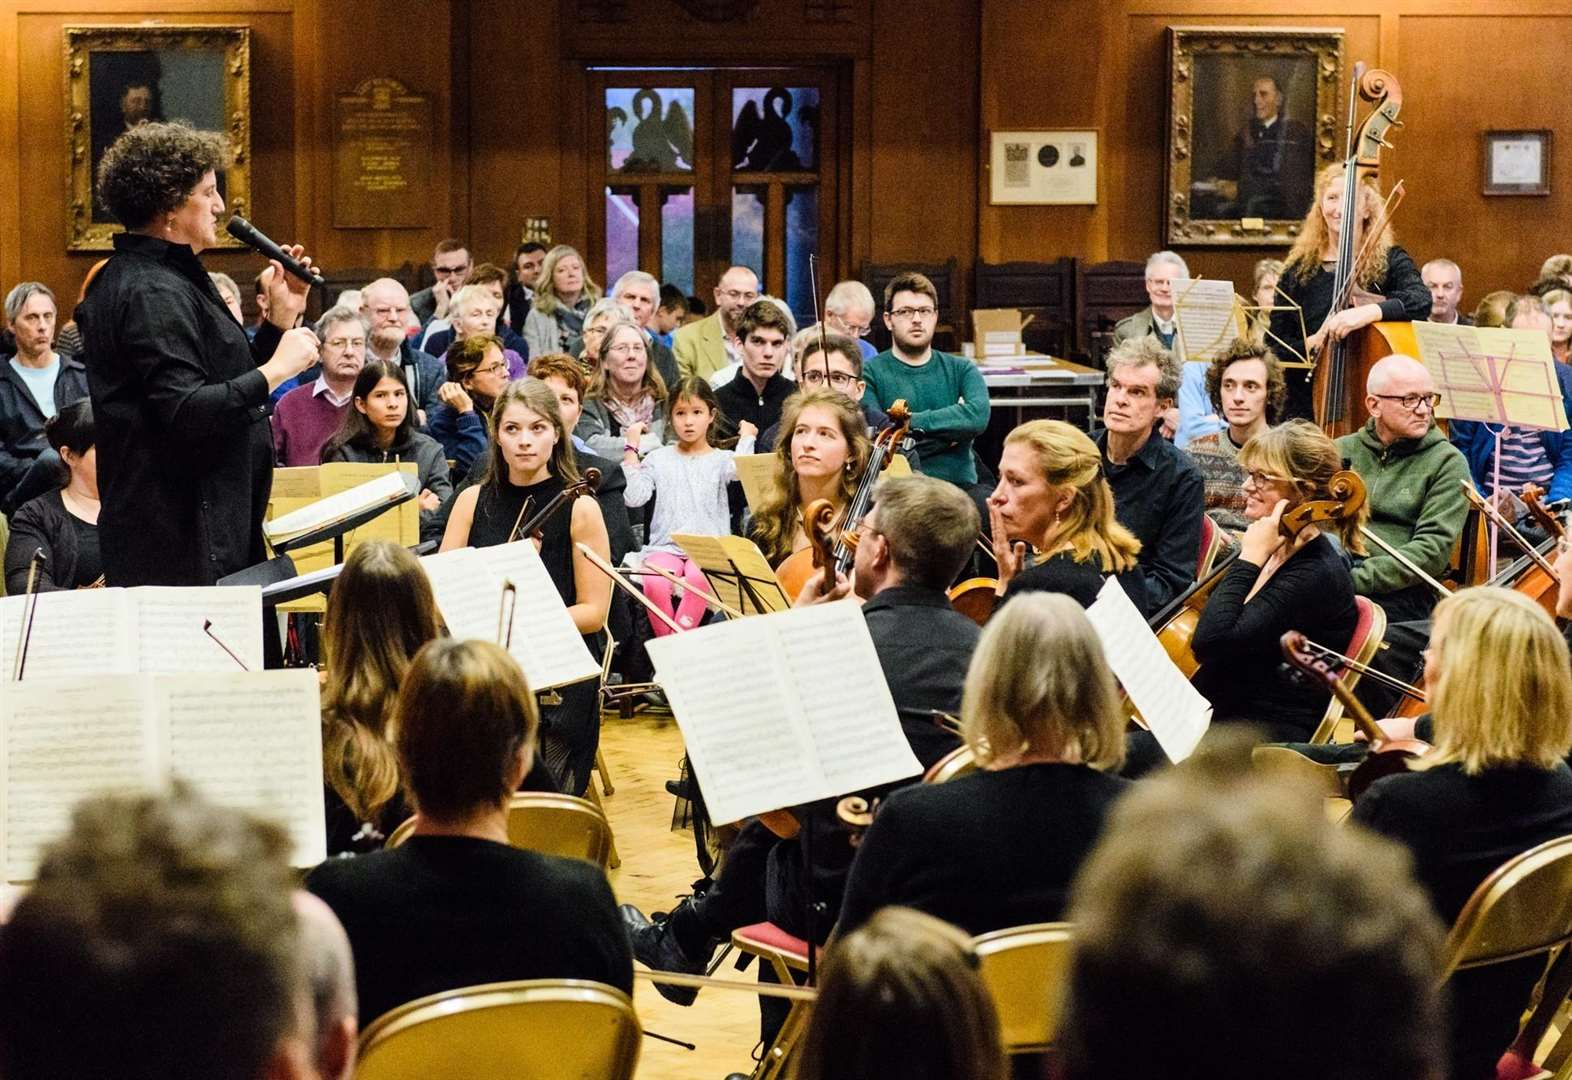 'Tchaikovsky's Sixth' concert to give audience the inside line on Bishop's Stortford Sinfonia